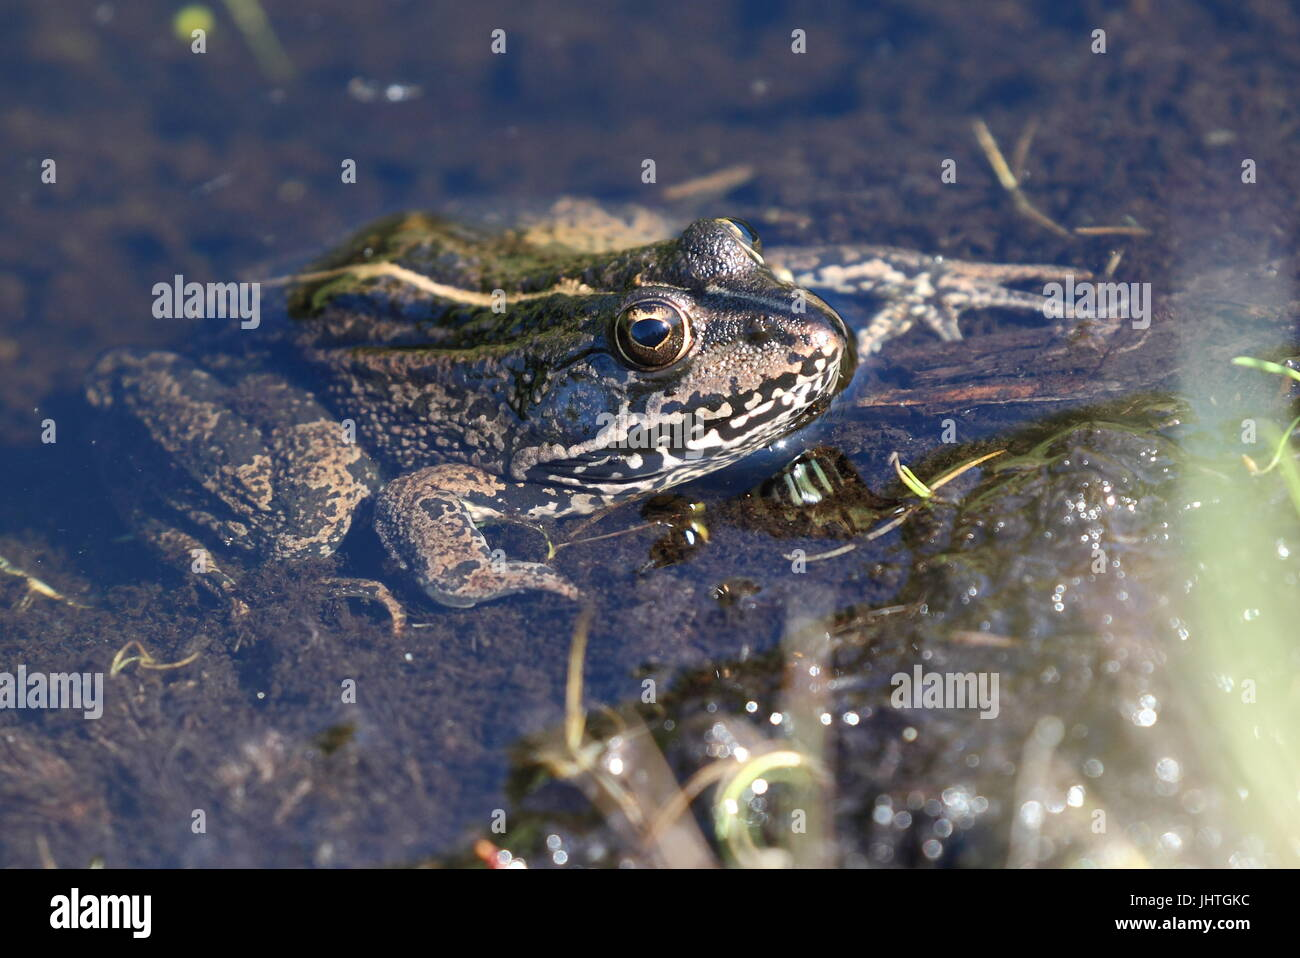 Marsh Frog in pool at Ham Wall, RSPB - Stock Image